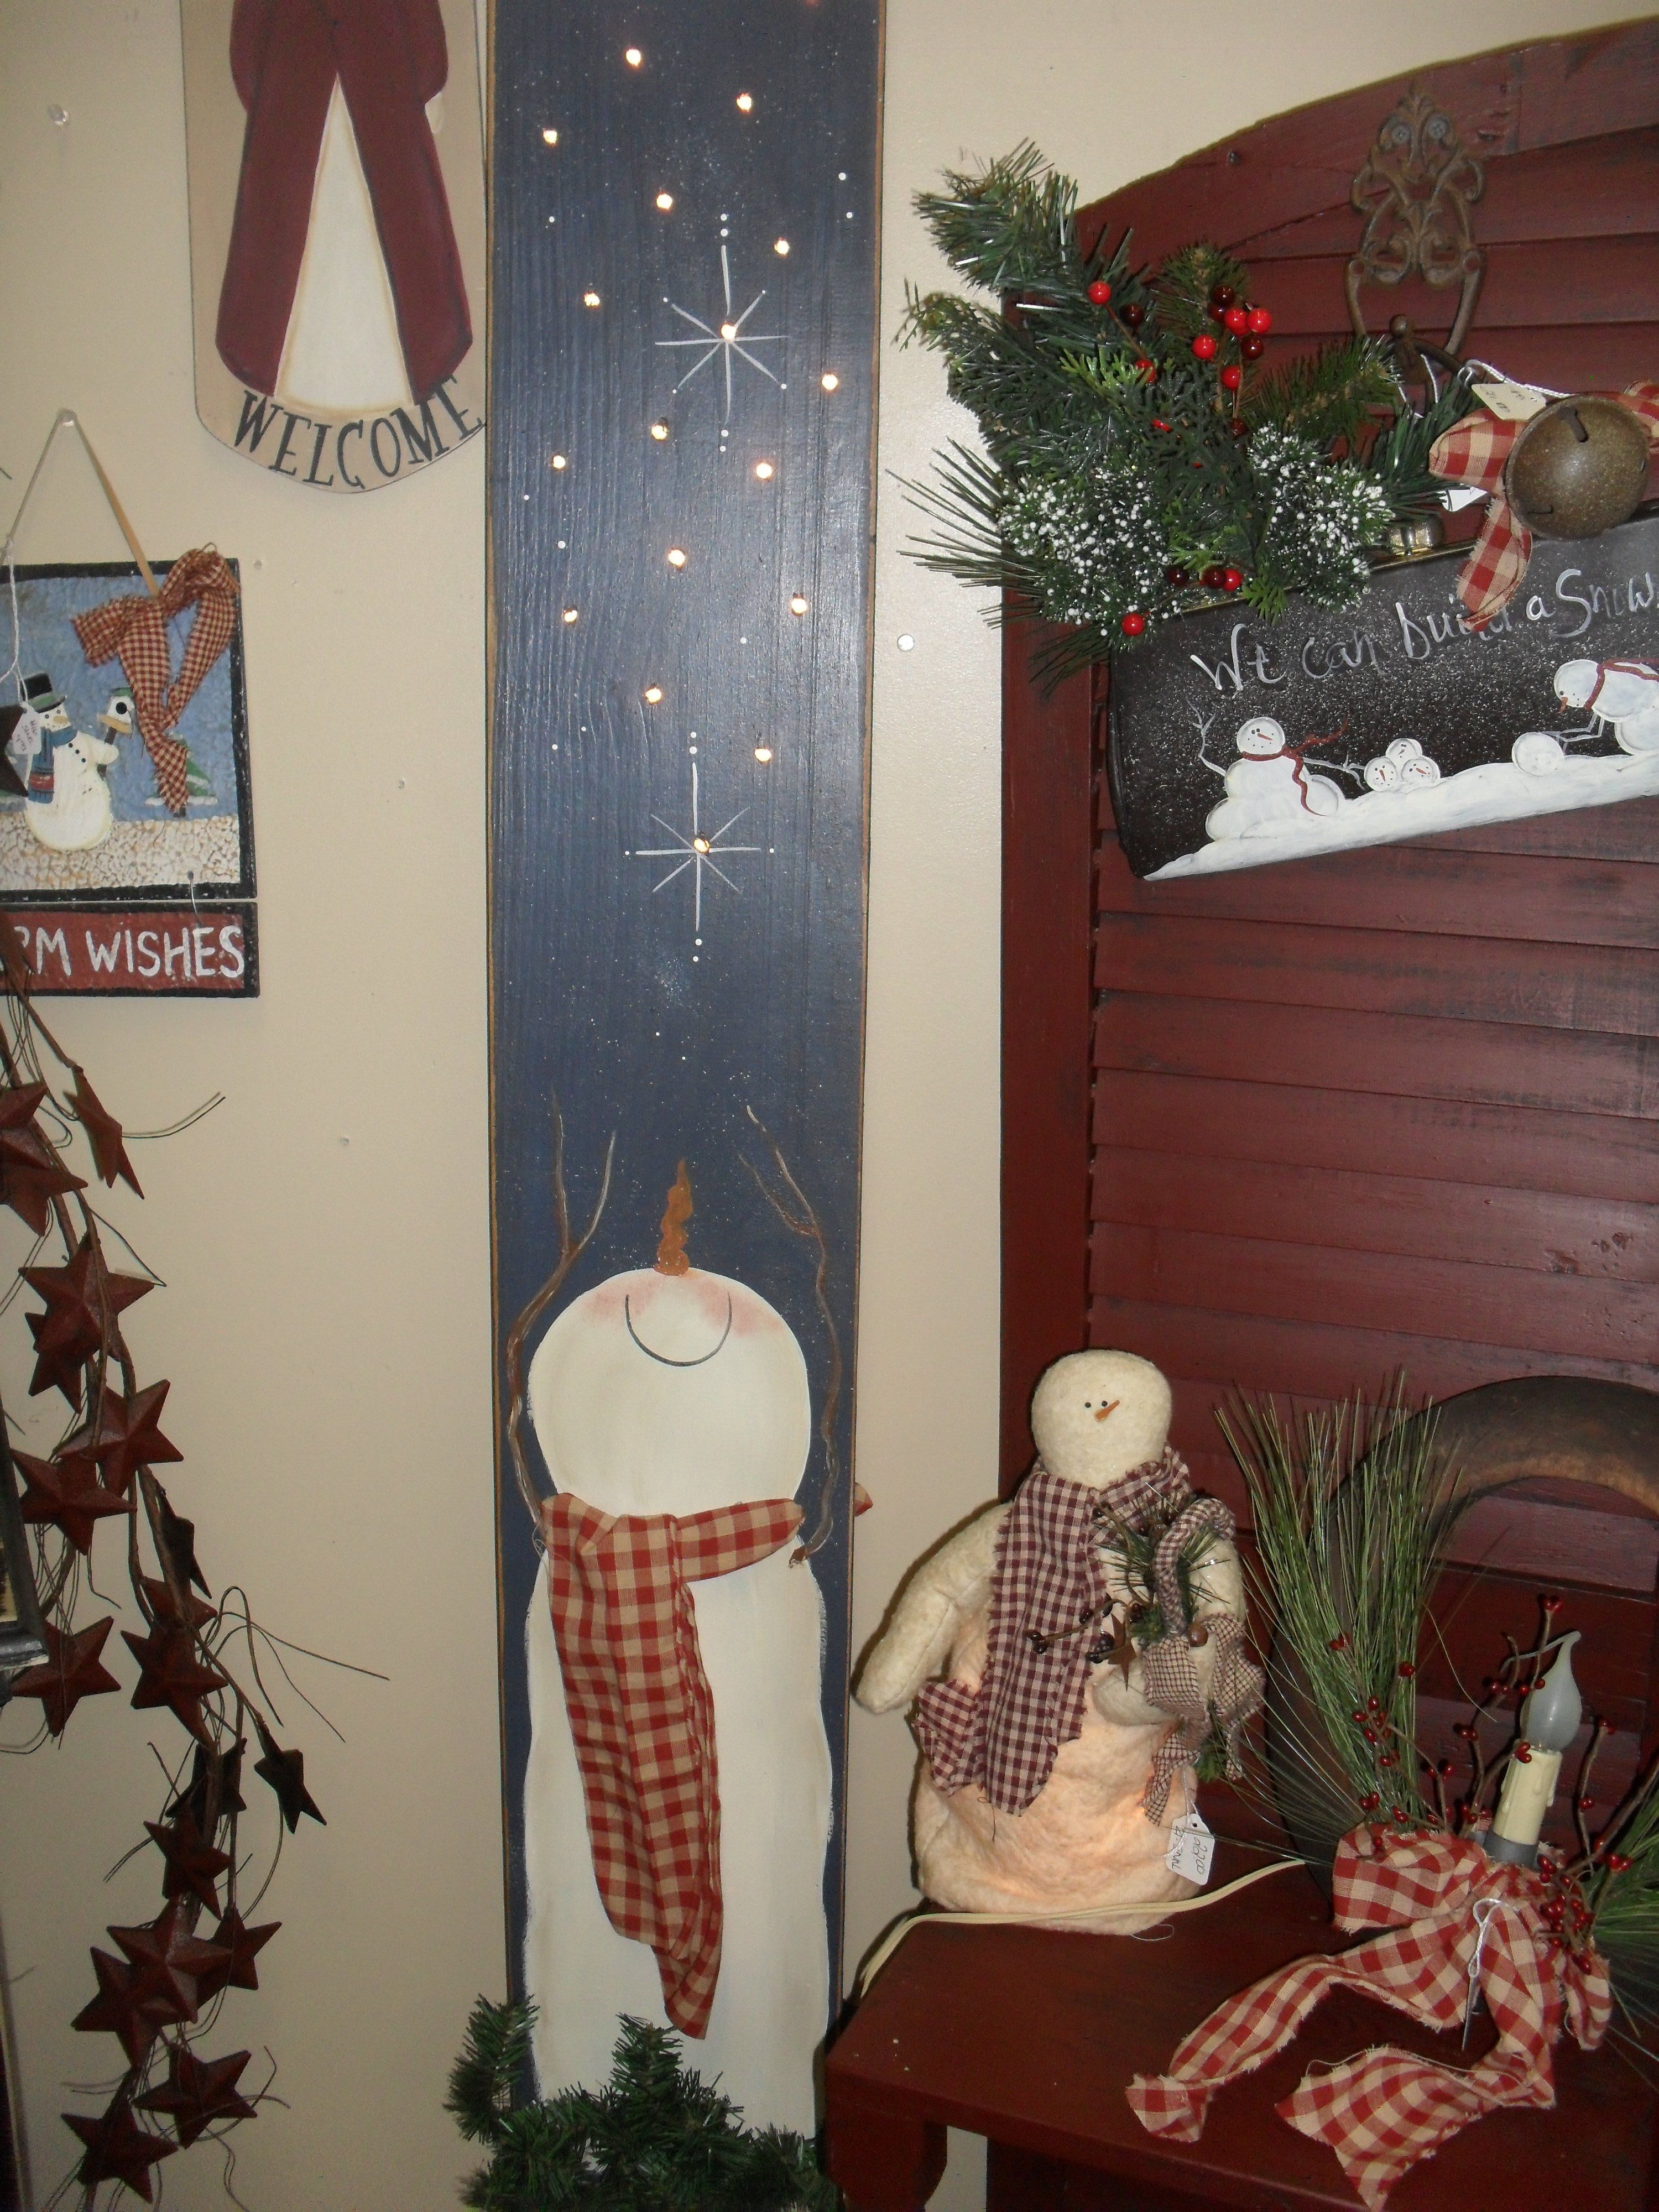 Paintings Tall Ligthed Up Snowman Board Christmas WoodChristmas SignsWinter ChristmasChristmas CraftsChristmas IdeasWood